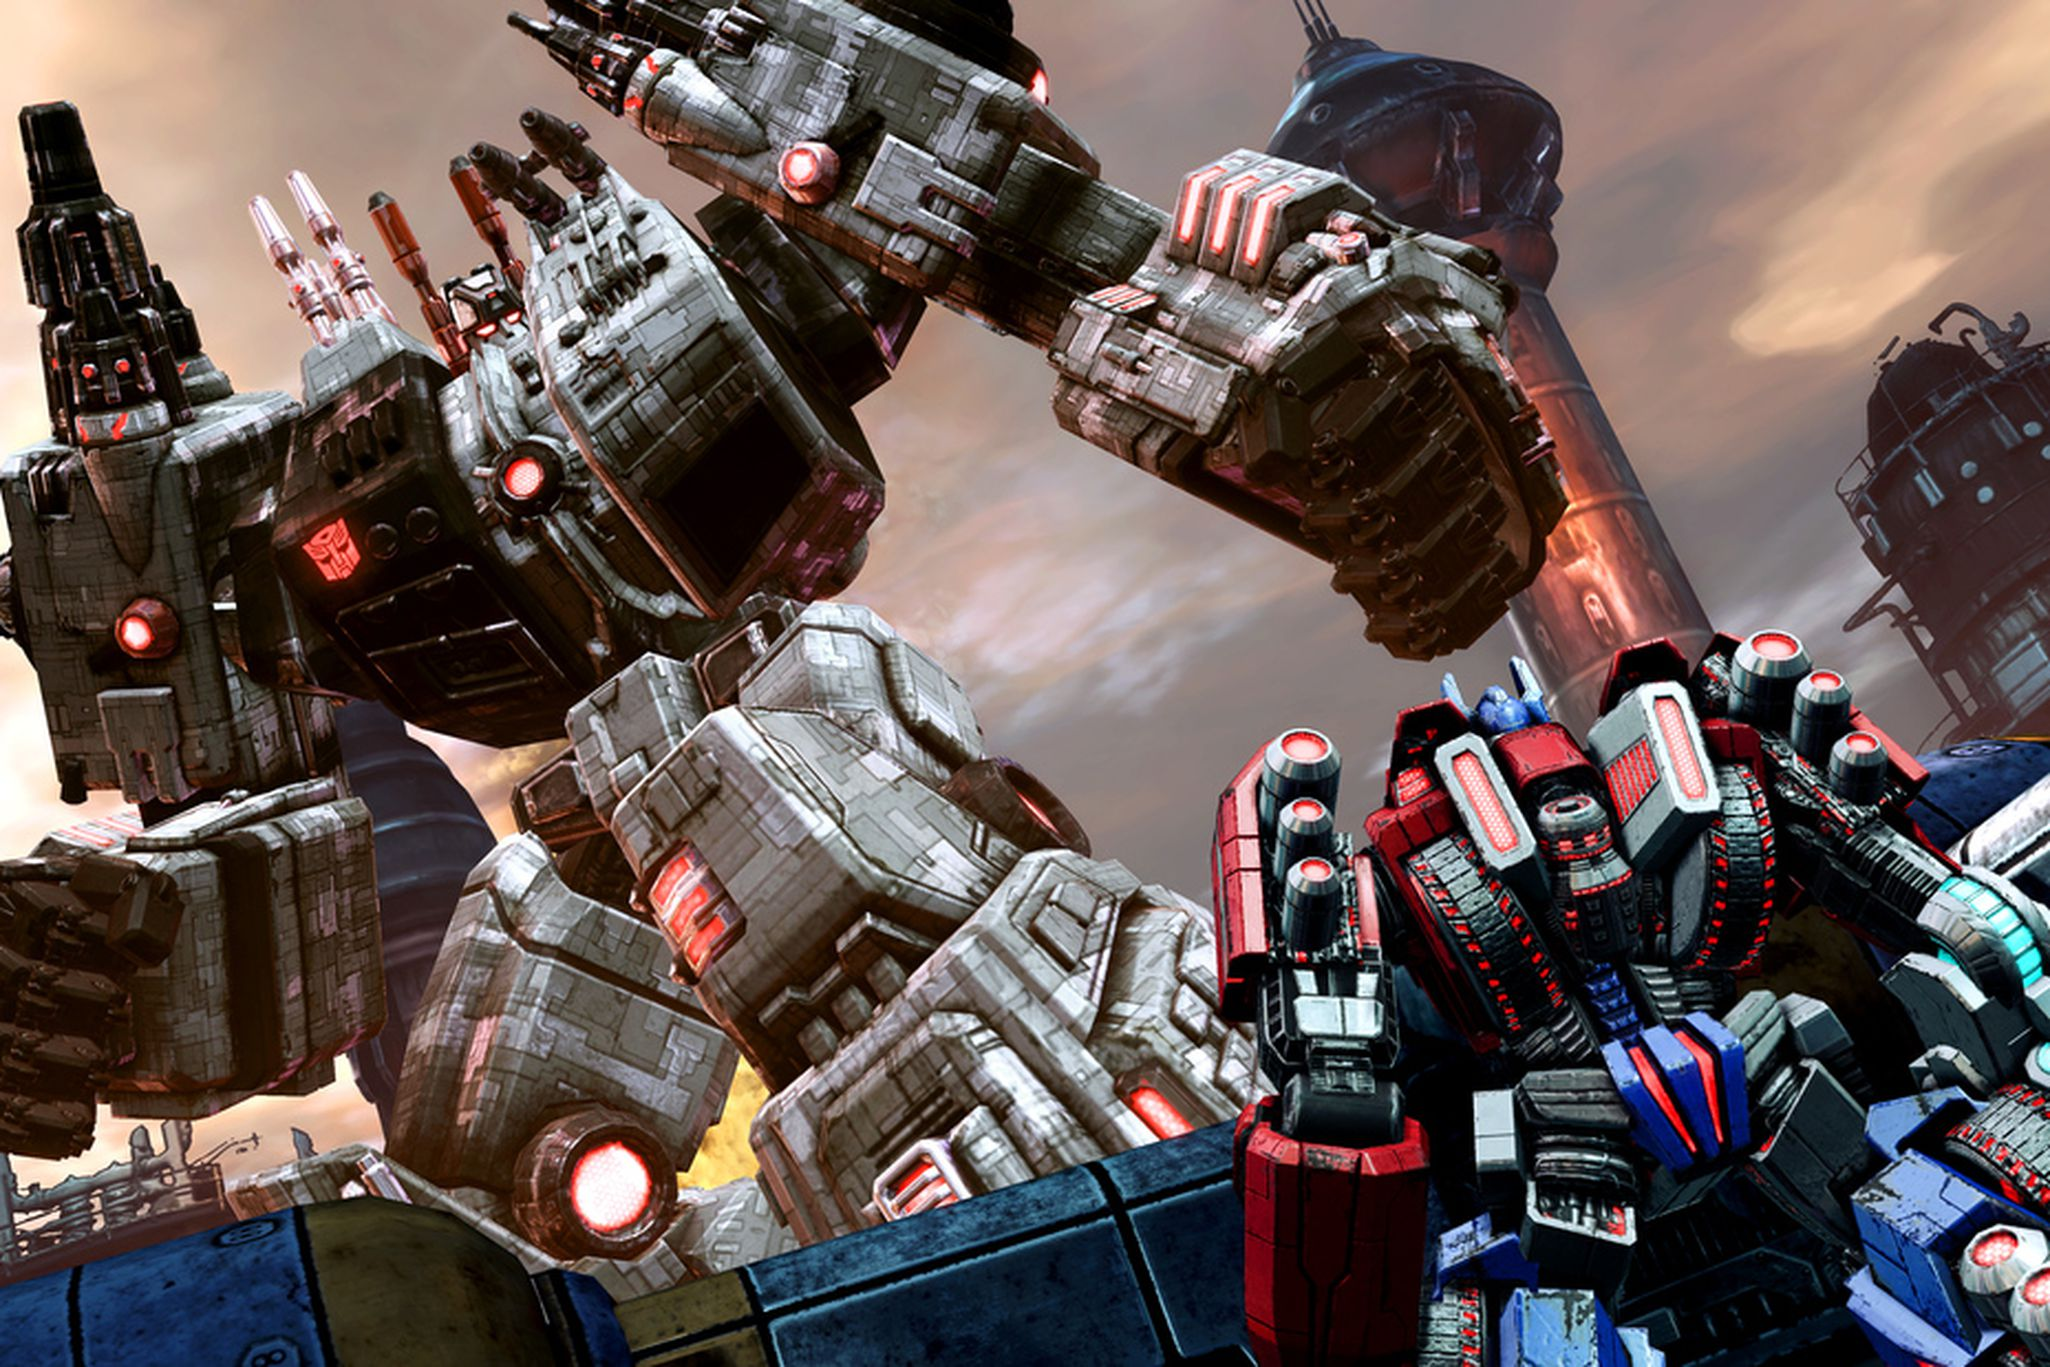 Transformers: Fall of Cybertron' - Multiplayer tips to keep your